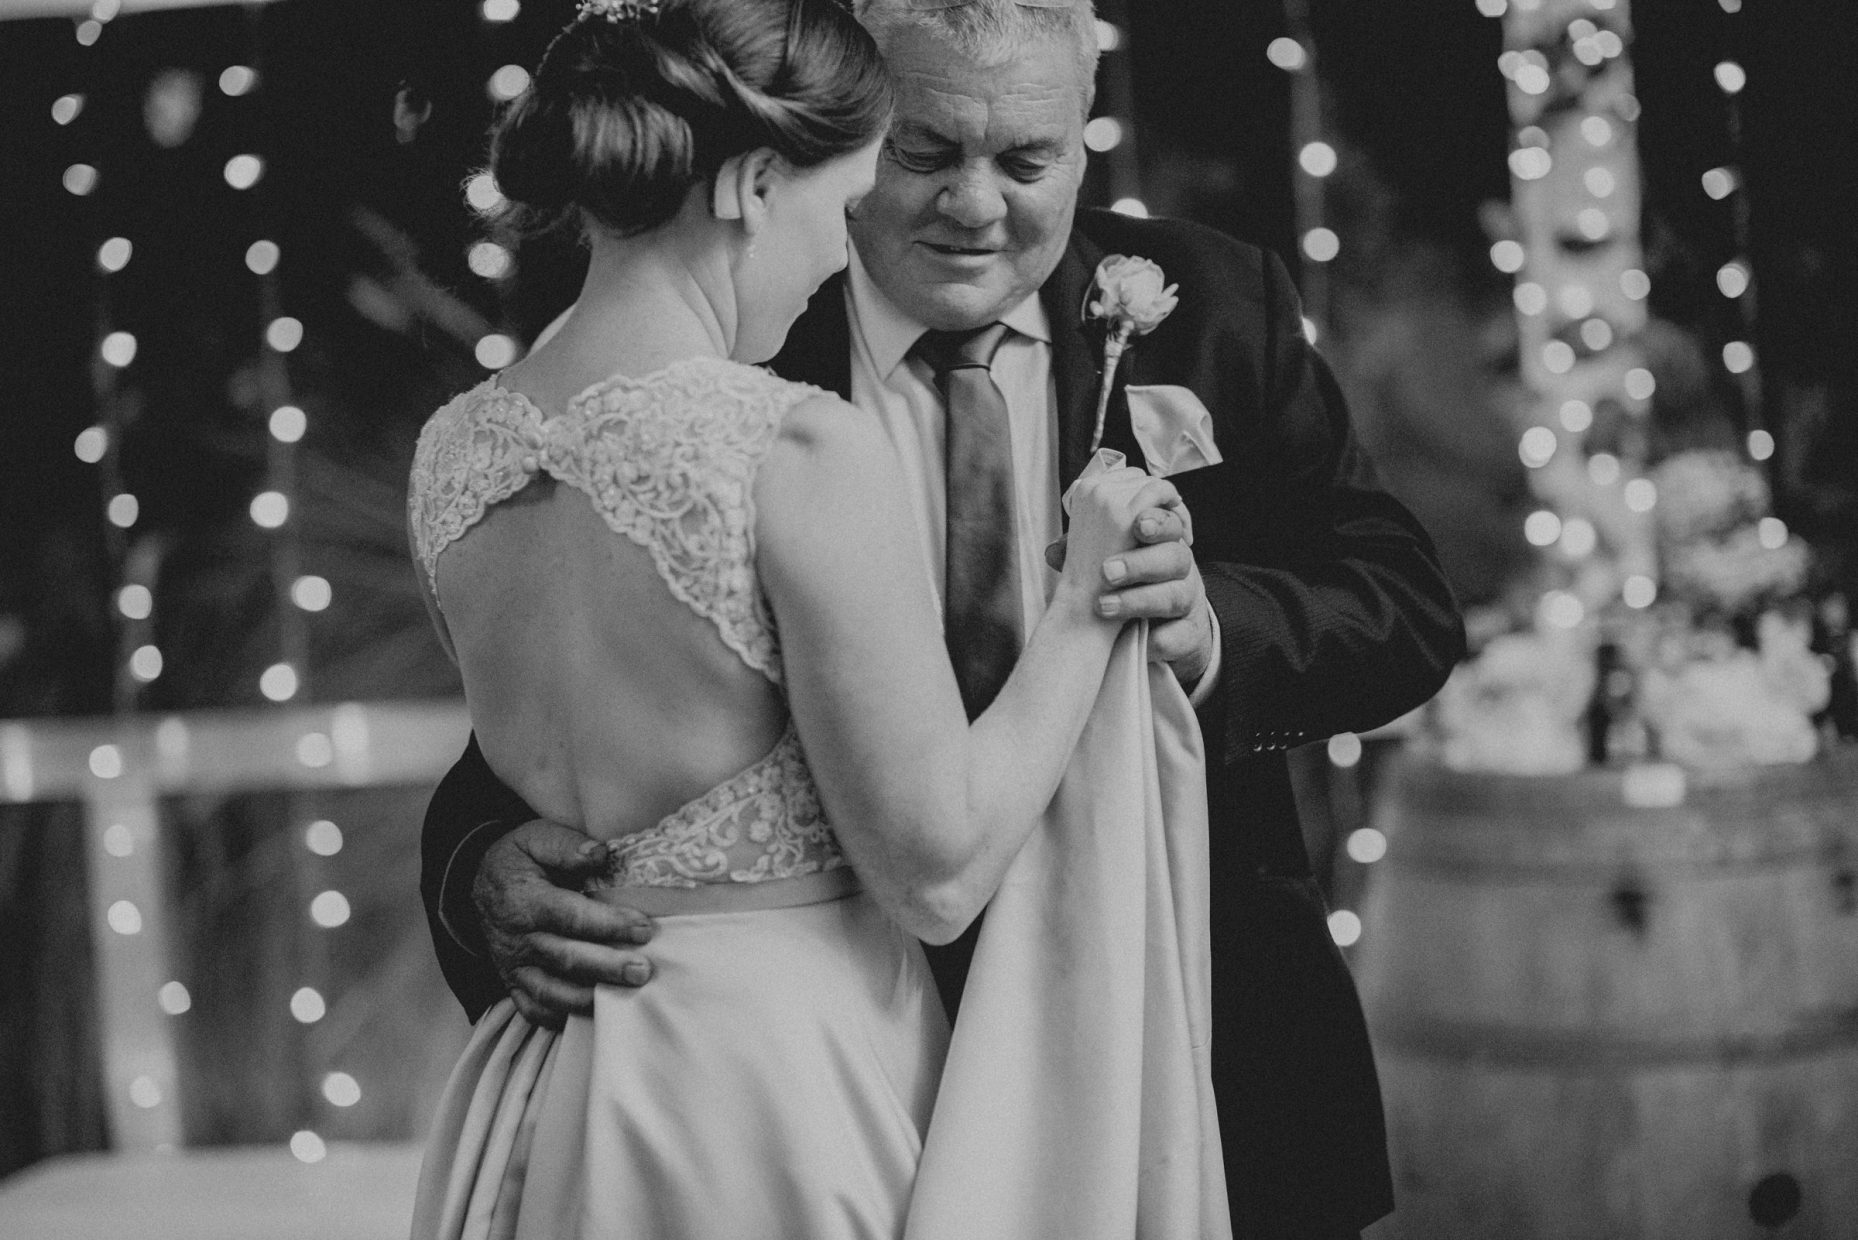 Black and white image of an elderly man in a suit dancing with a bride in her wedding dress